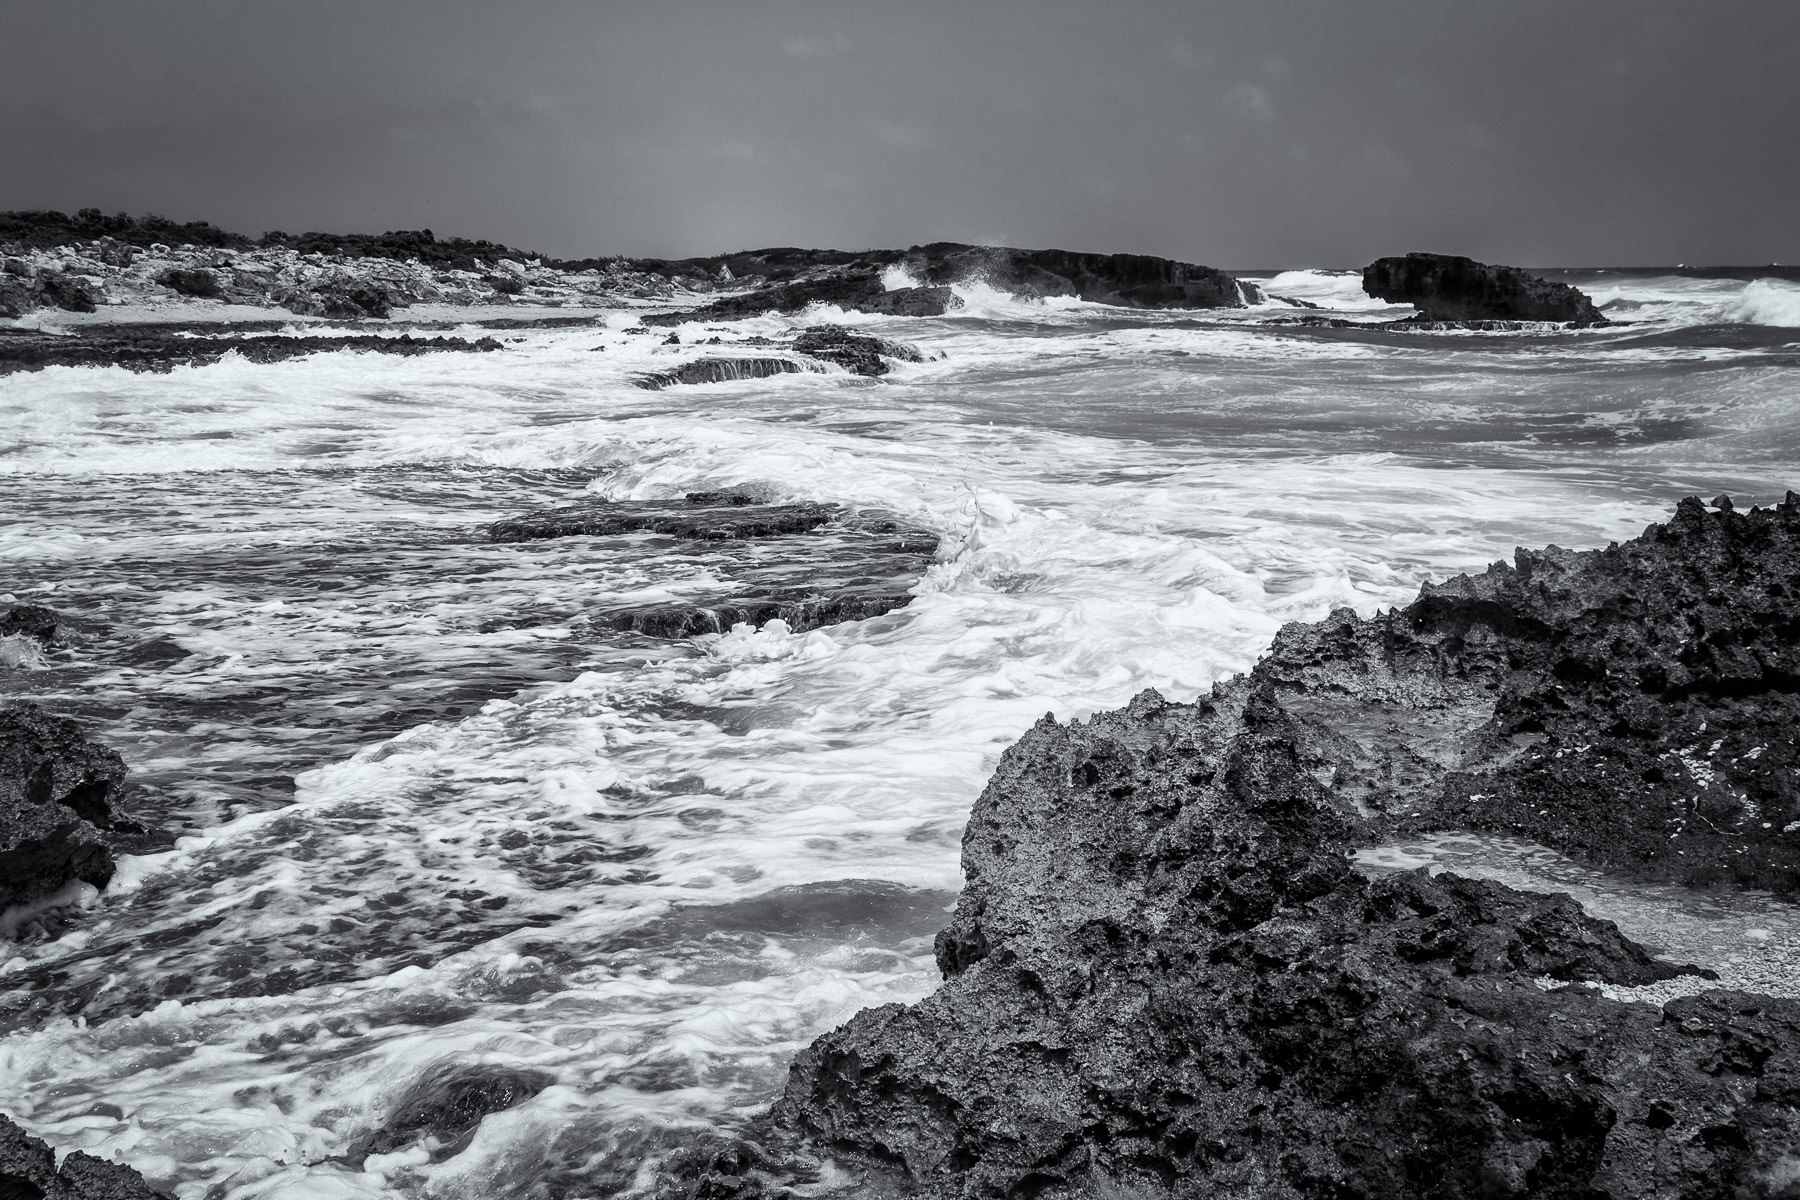 The surf crashes onto the rocks at El Mirador on the coast of Cozumel, Mexico.